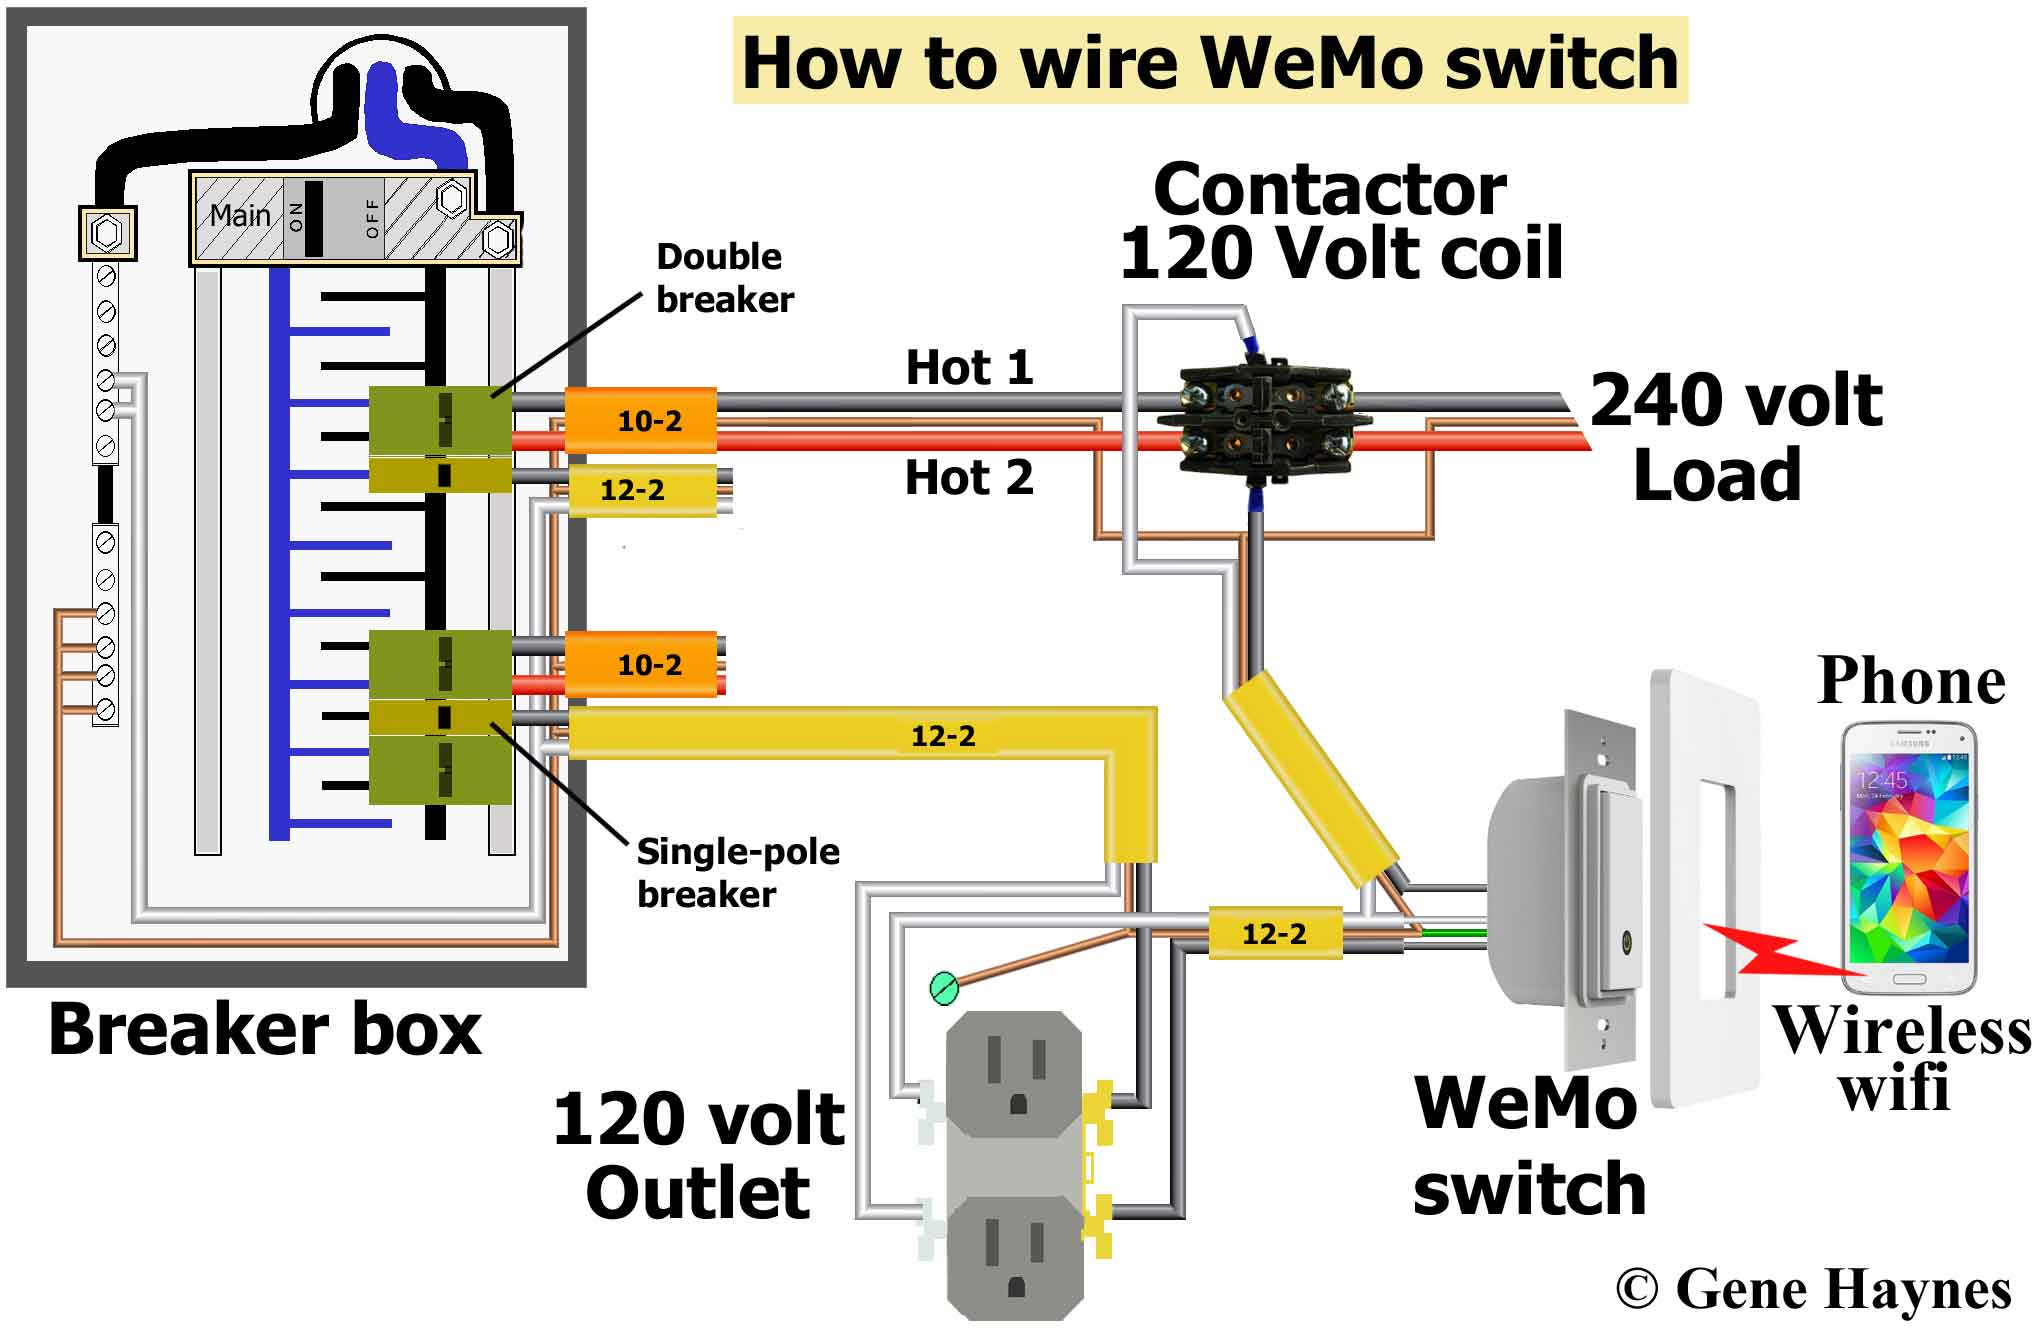 Do not use stranded wire under screw plates. Buy from my affiliate links:  WeMo switch · Contactor with 120 volt coil